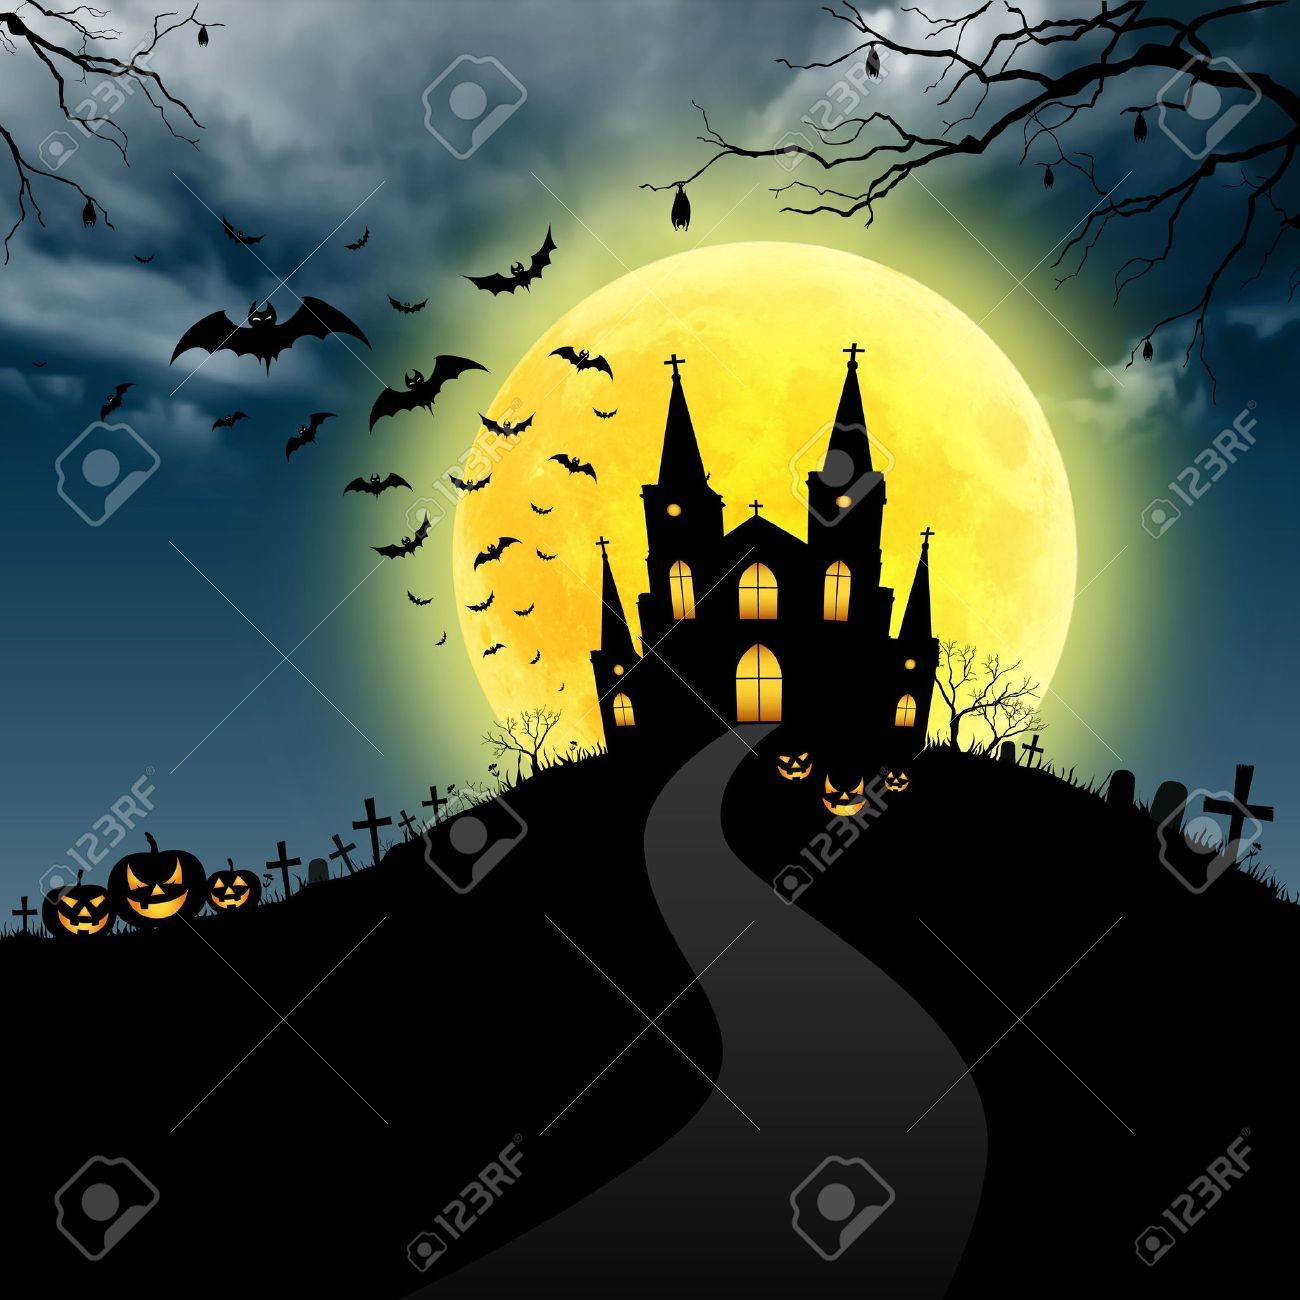 Halloween Art Stock Photo, Picture And Royalty Free Image. Image ...